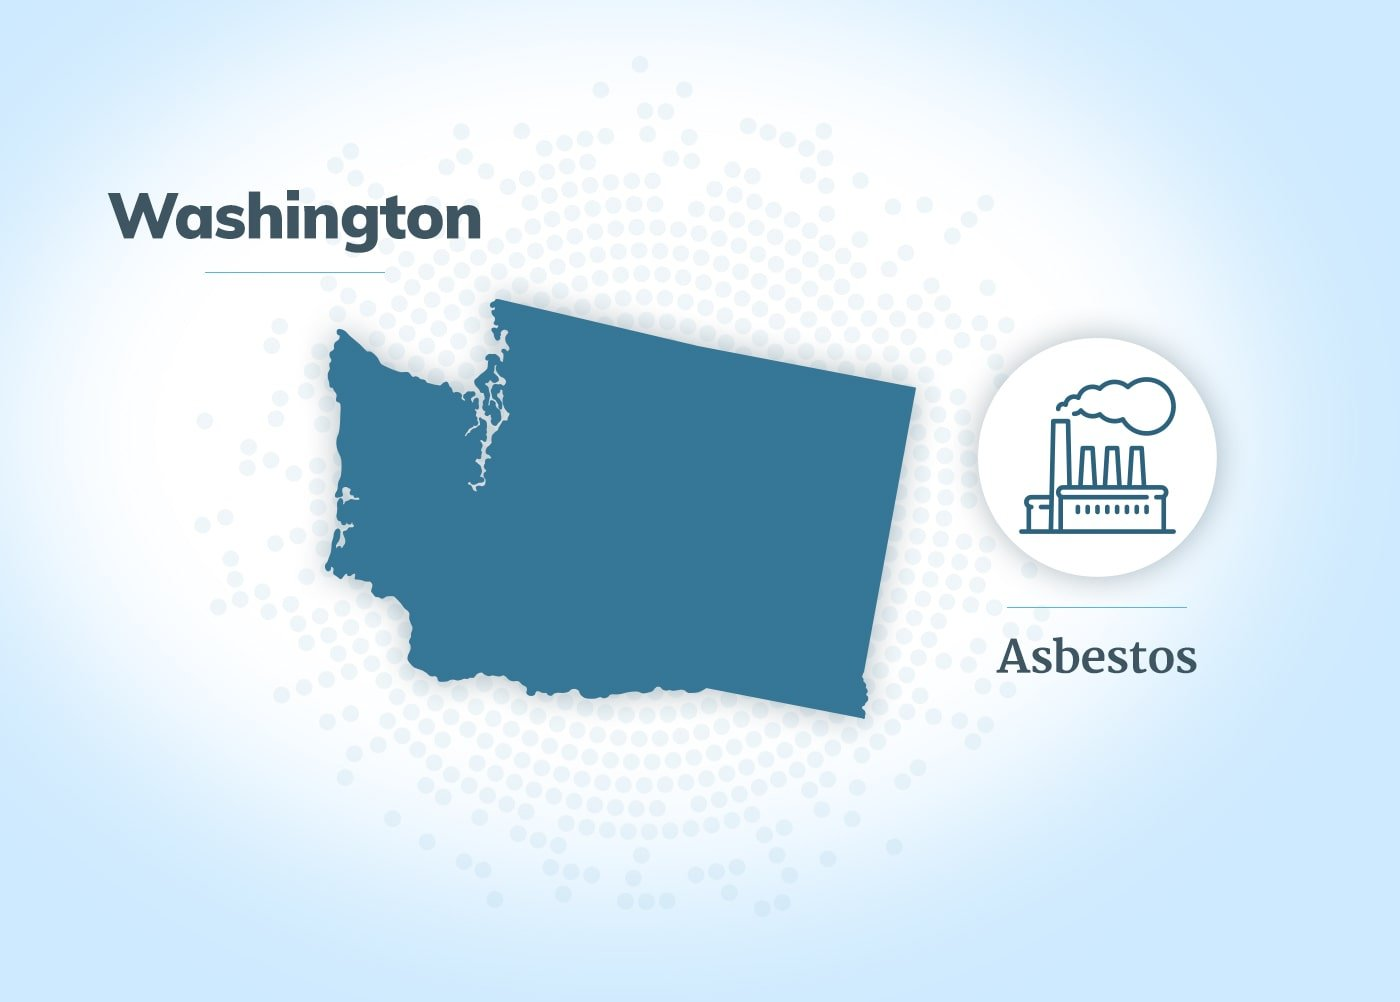 Asbestos exposure in Washington